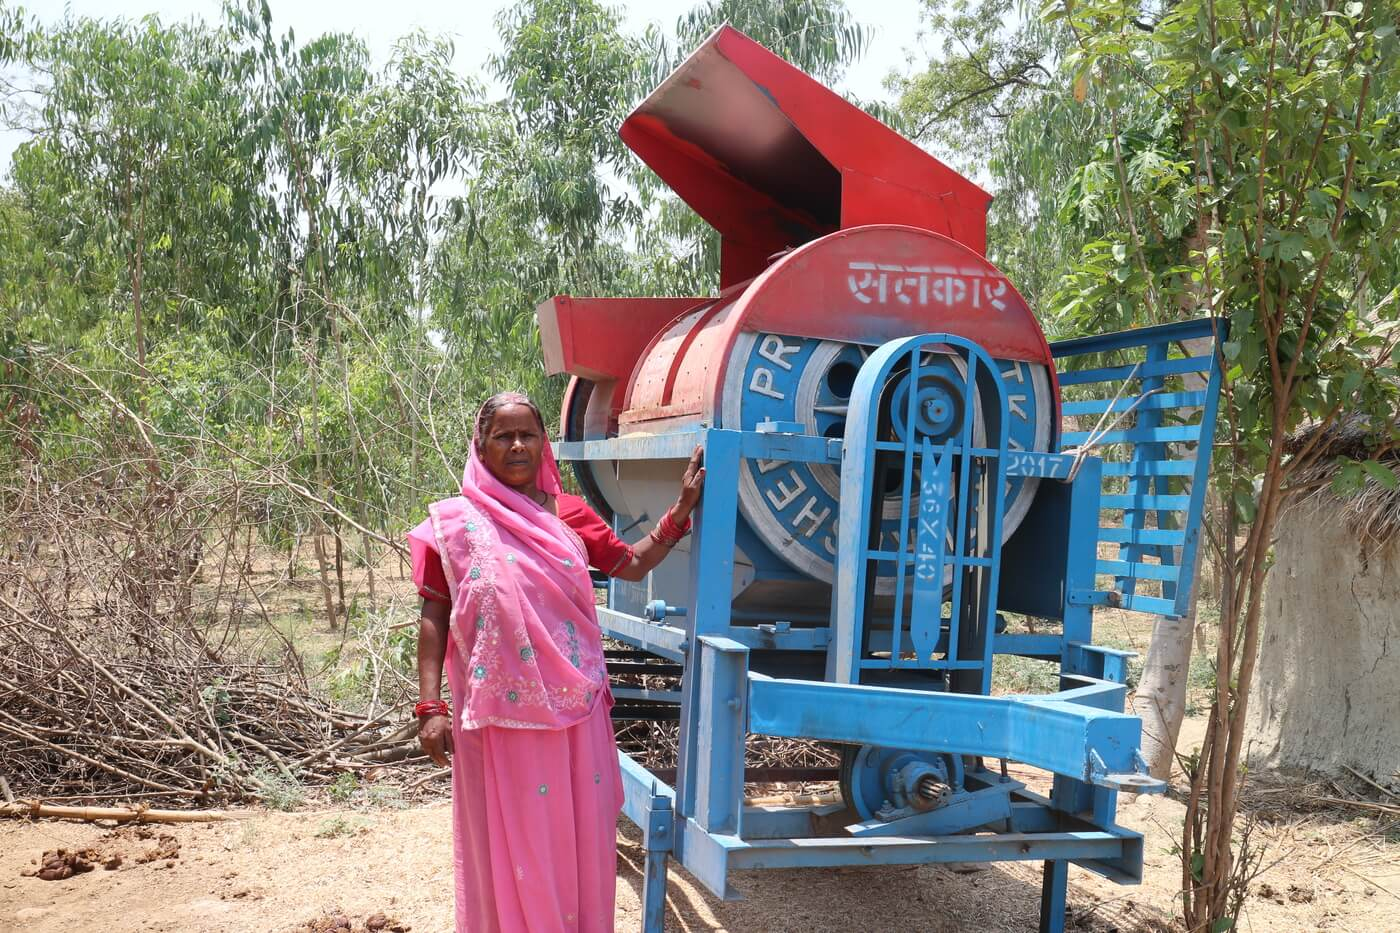 Indian microentrepreneur. Photo credit: Grameen Foundation India